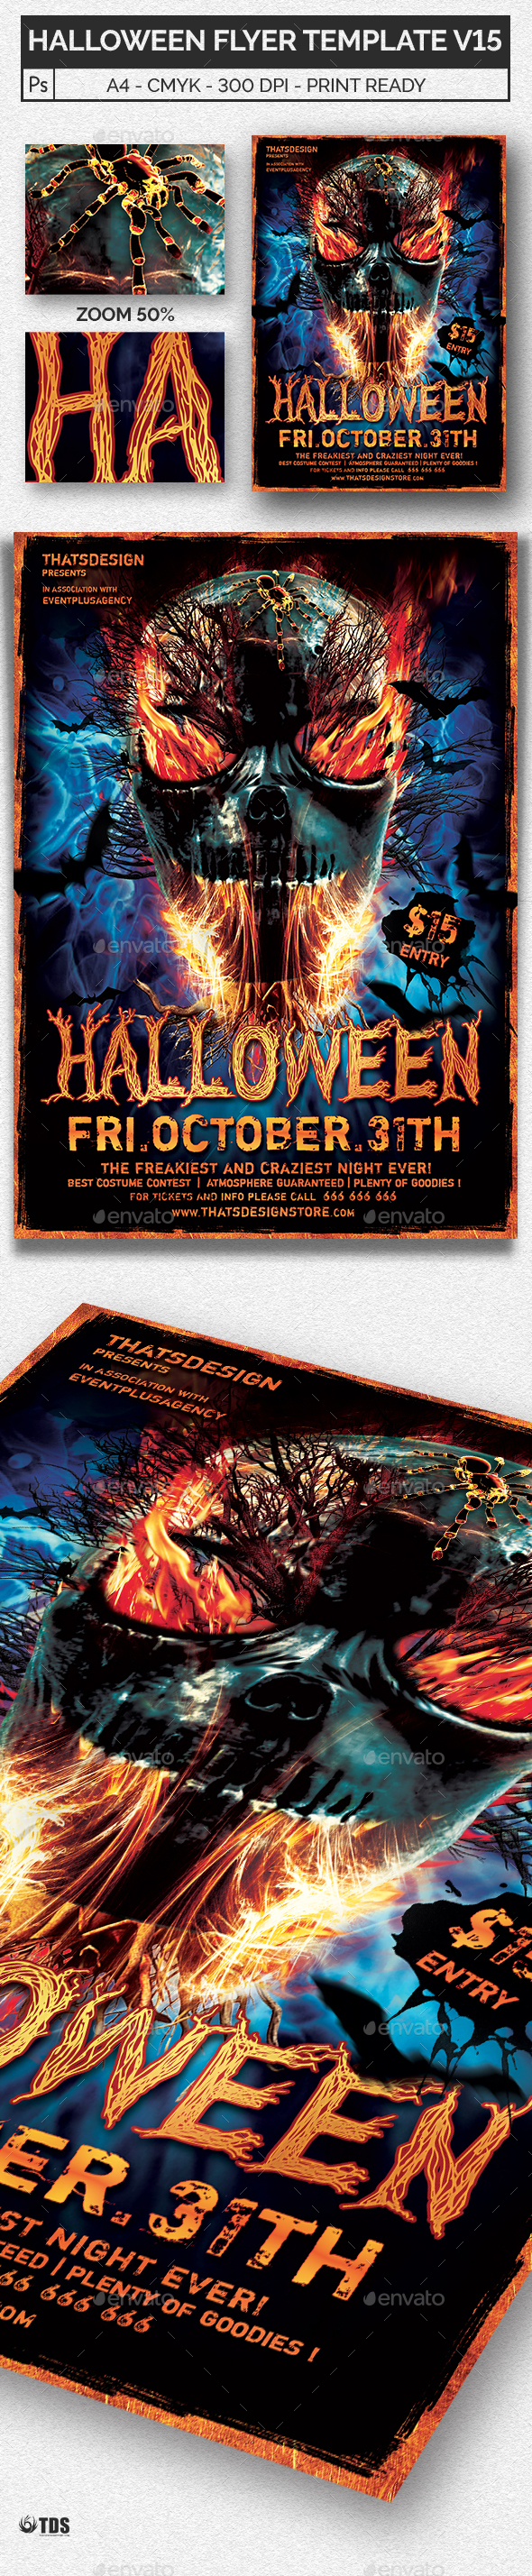 Halloween Flyer Template V15 - Holidays Events